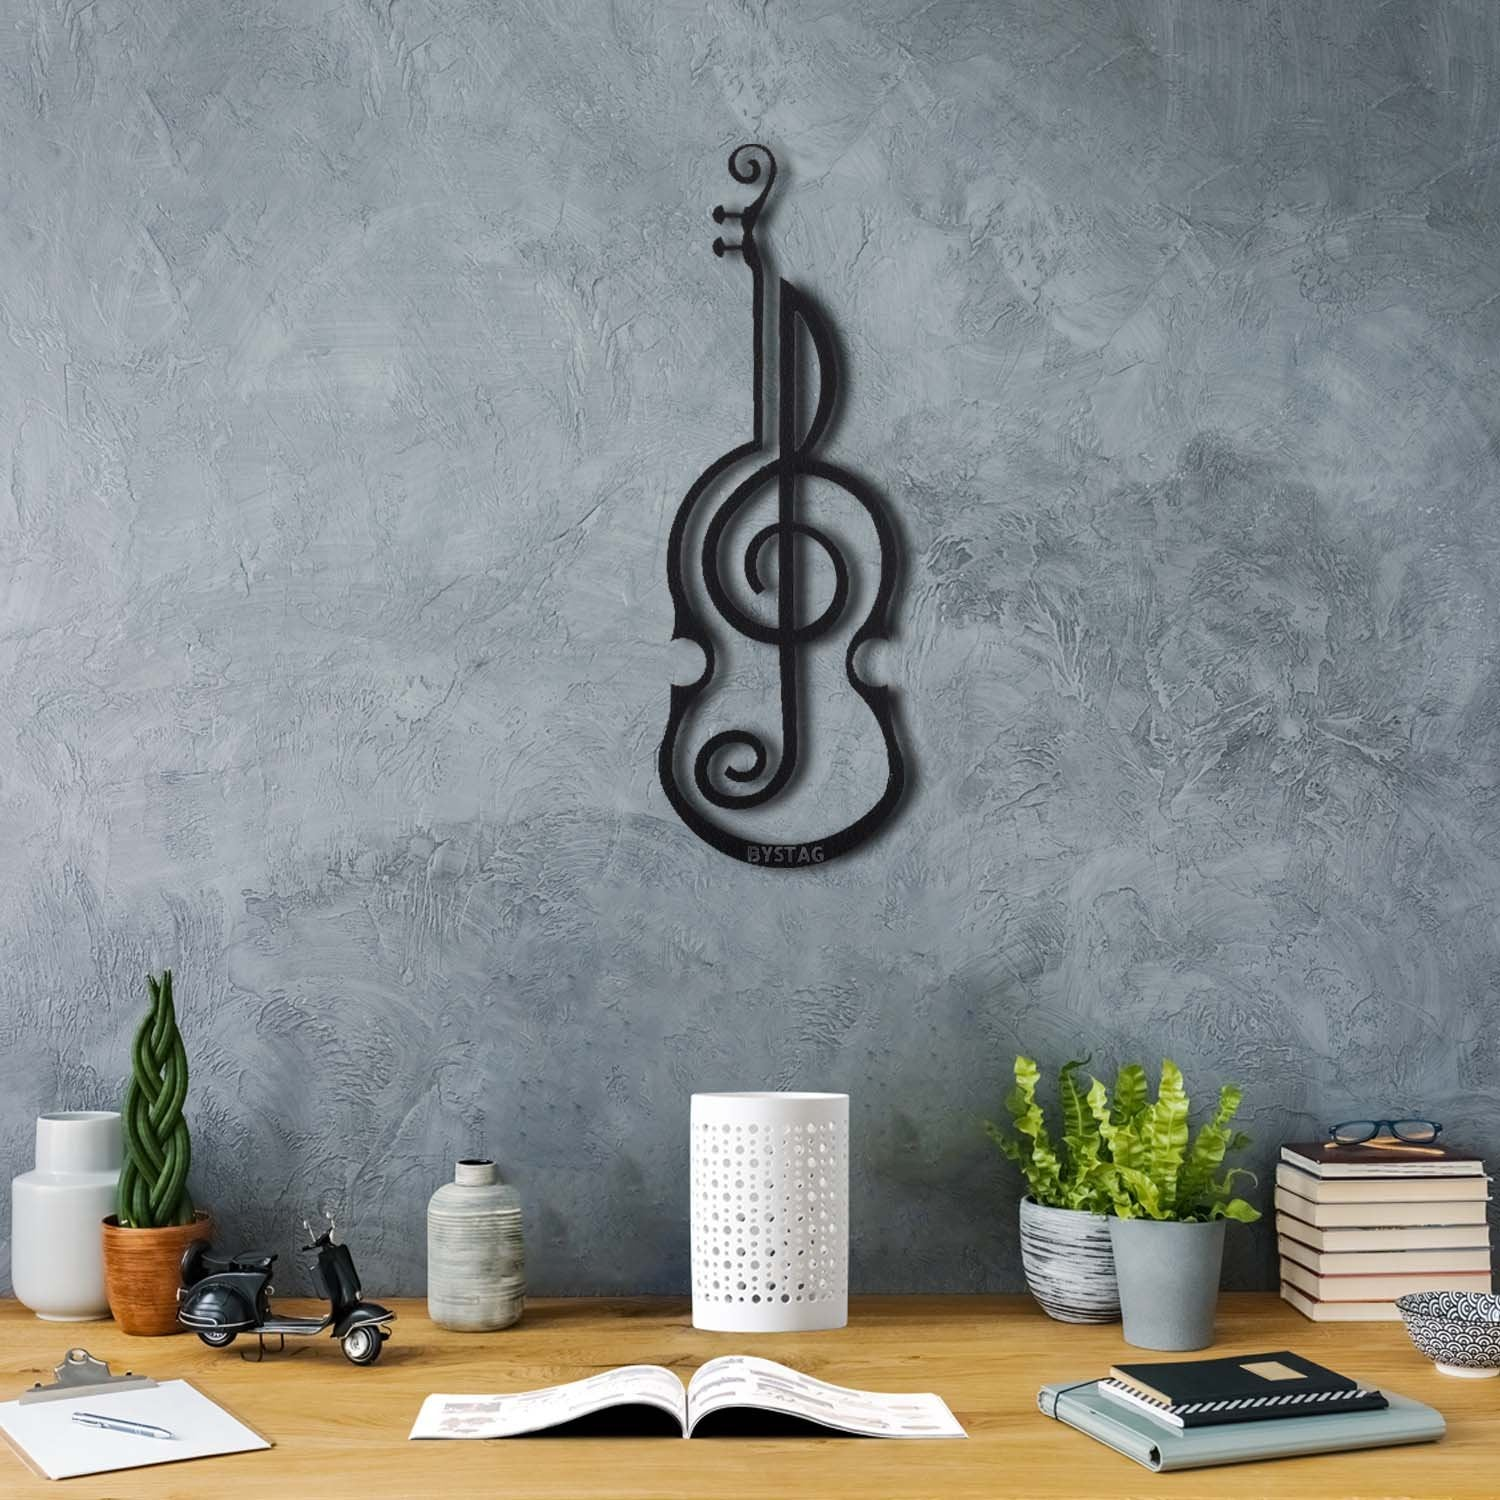 Bystag metal dekoratif duvar aksesuarı violin- Bystag metal wall art-wall art-wall decor-metal wall decor-violin